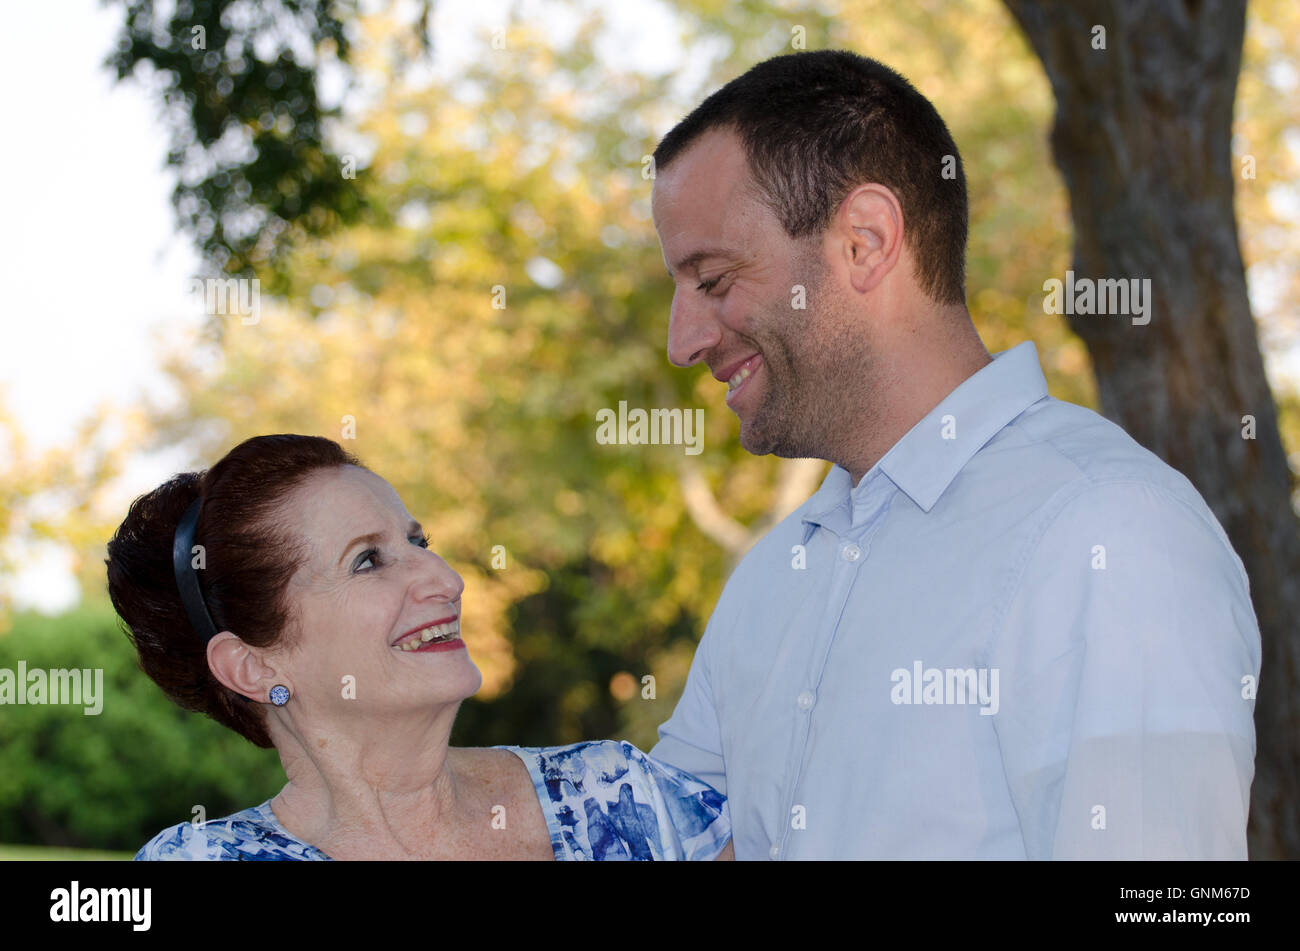 Mother and her adult son looking at each other outdoors on a fall evening cherishing the moments of life. - Stock Image